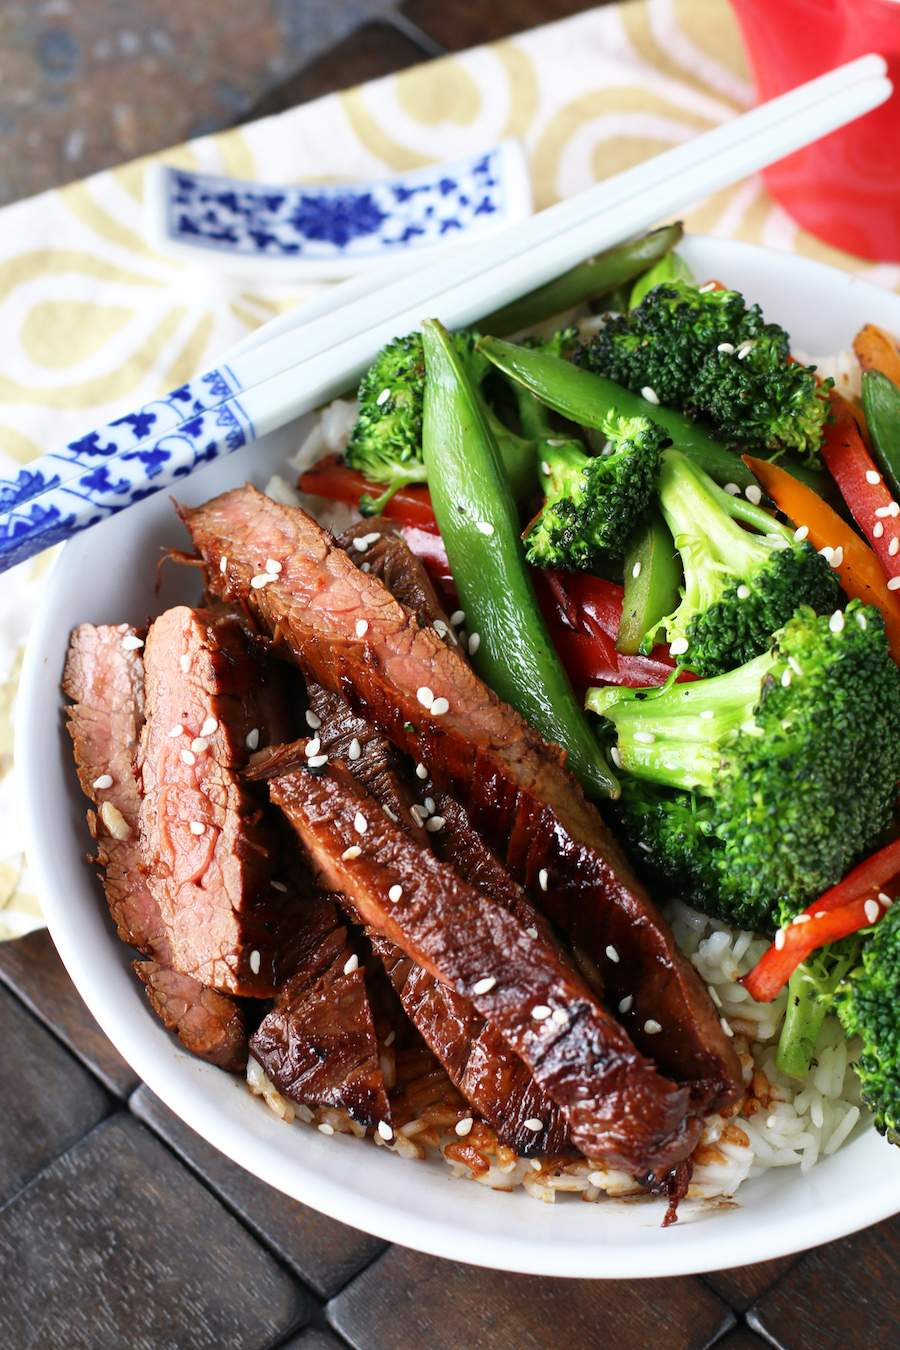 Image of soy marinated flank steak stir-fry with white and blue chopsticks on the bowl and a white and brown napkin in the back.